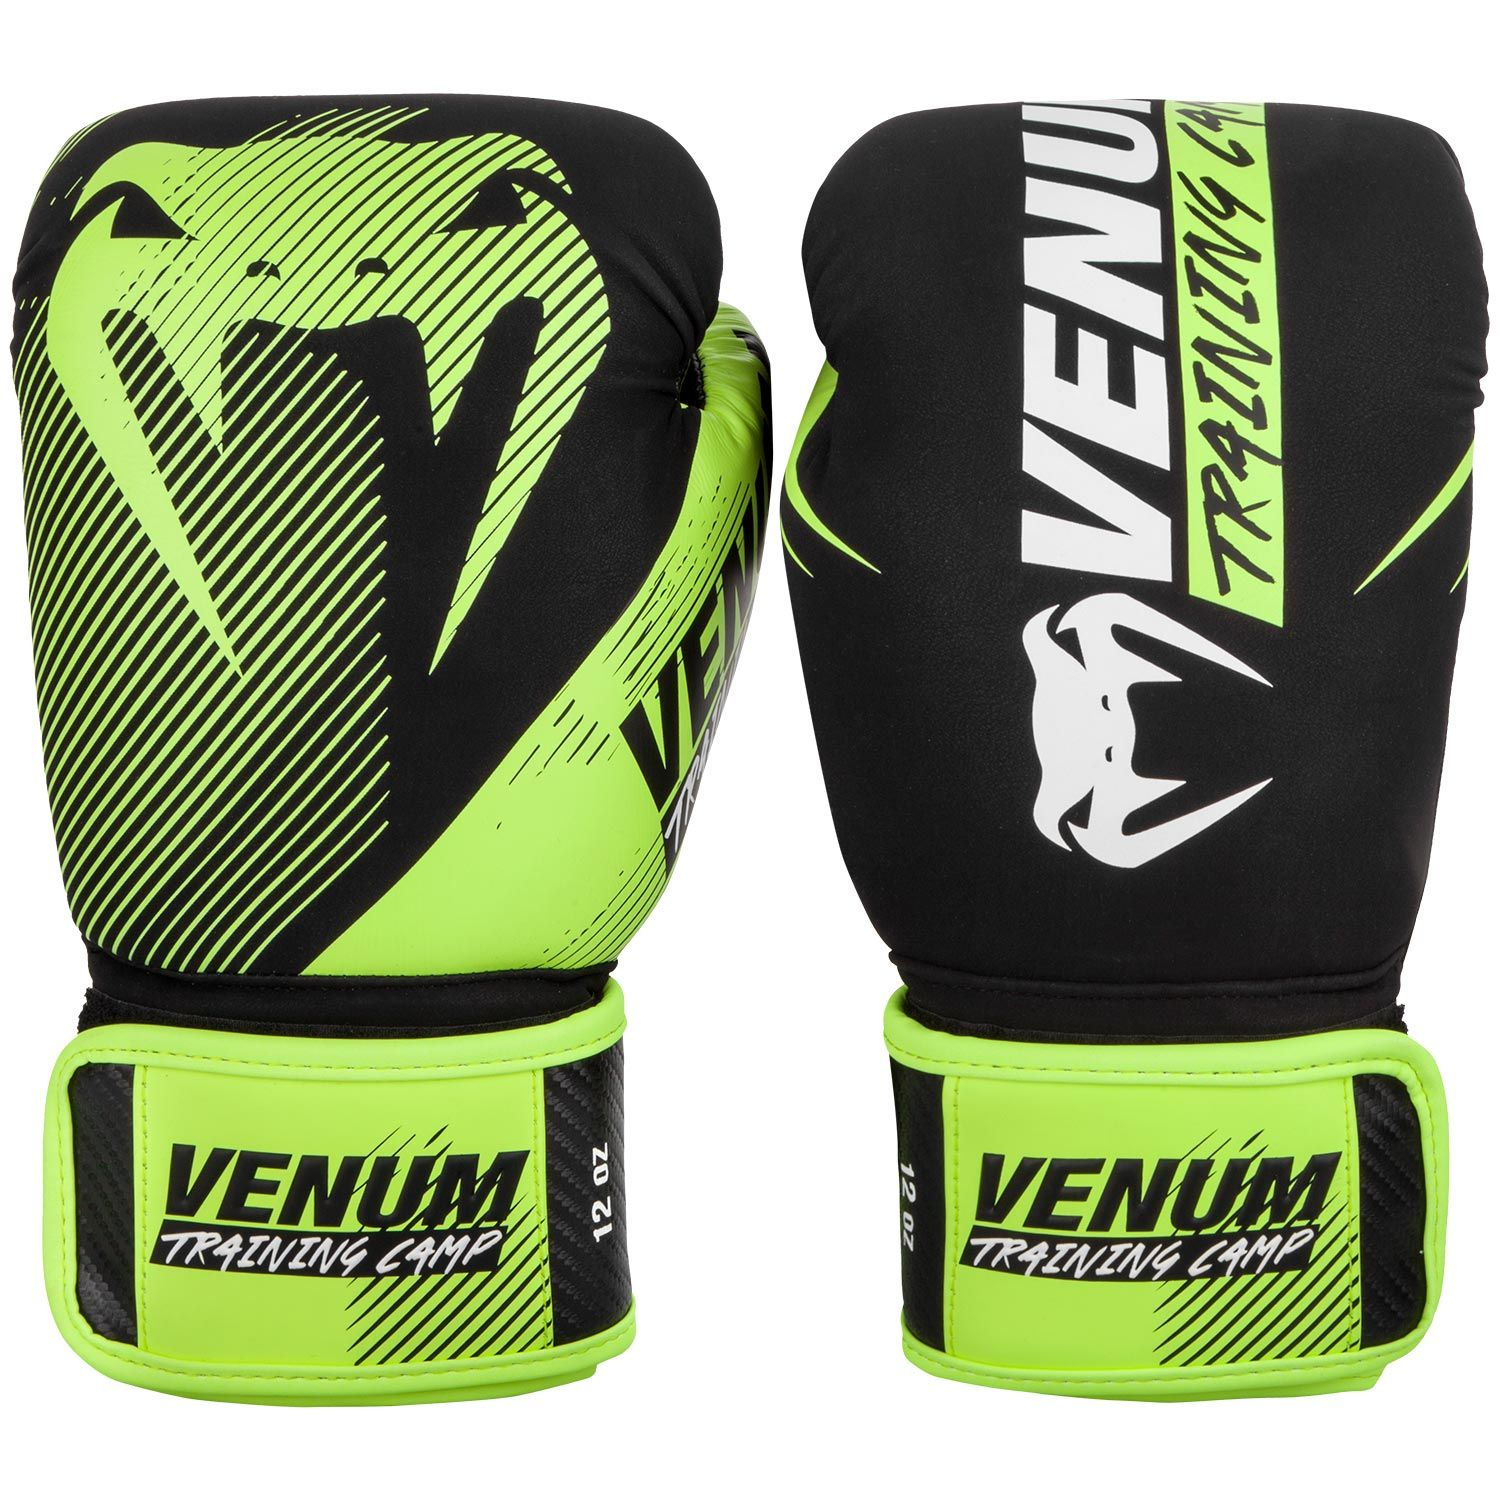 gants_de_boxe_venum_training_camp